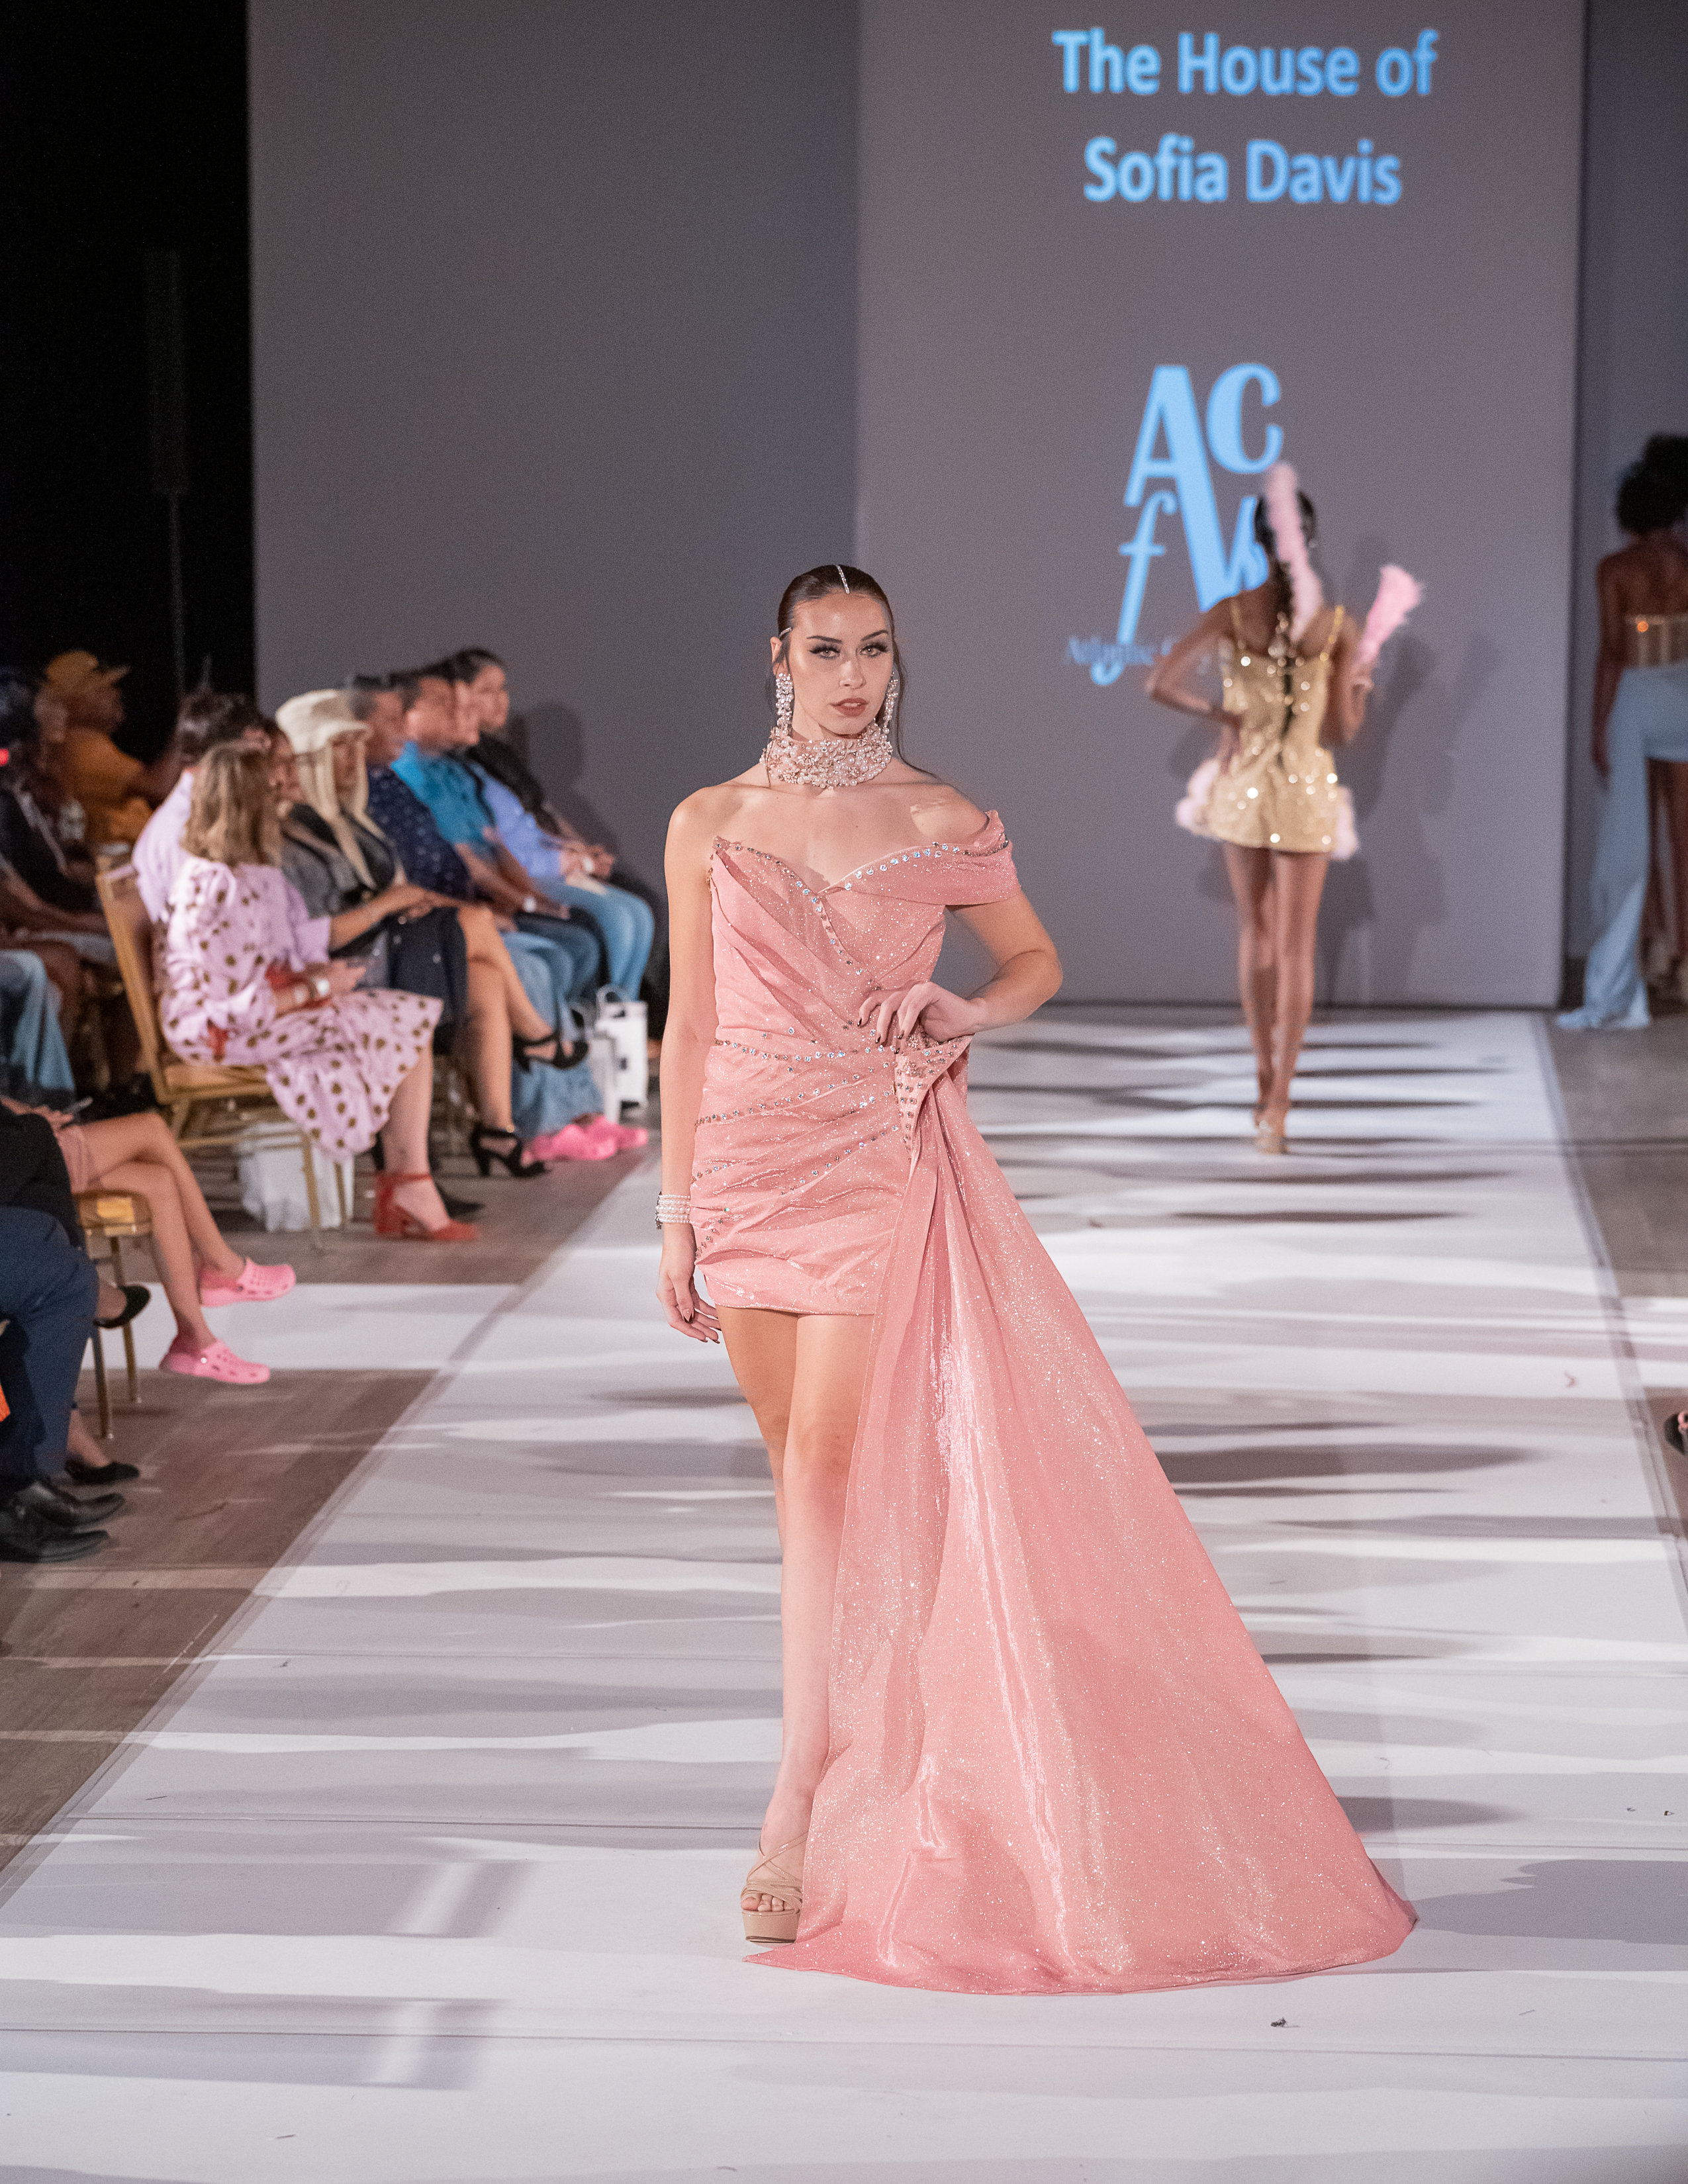 ATLANTIC CITY FASHION WEEK DOES IT AGAIN… THE PERFECT SHOW